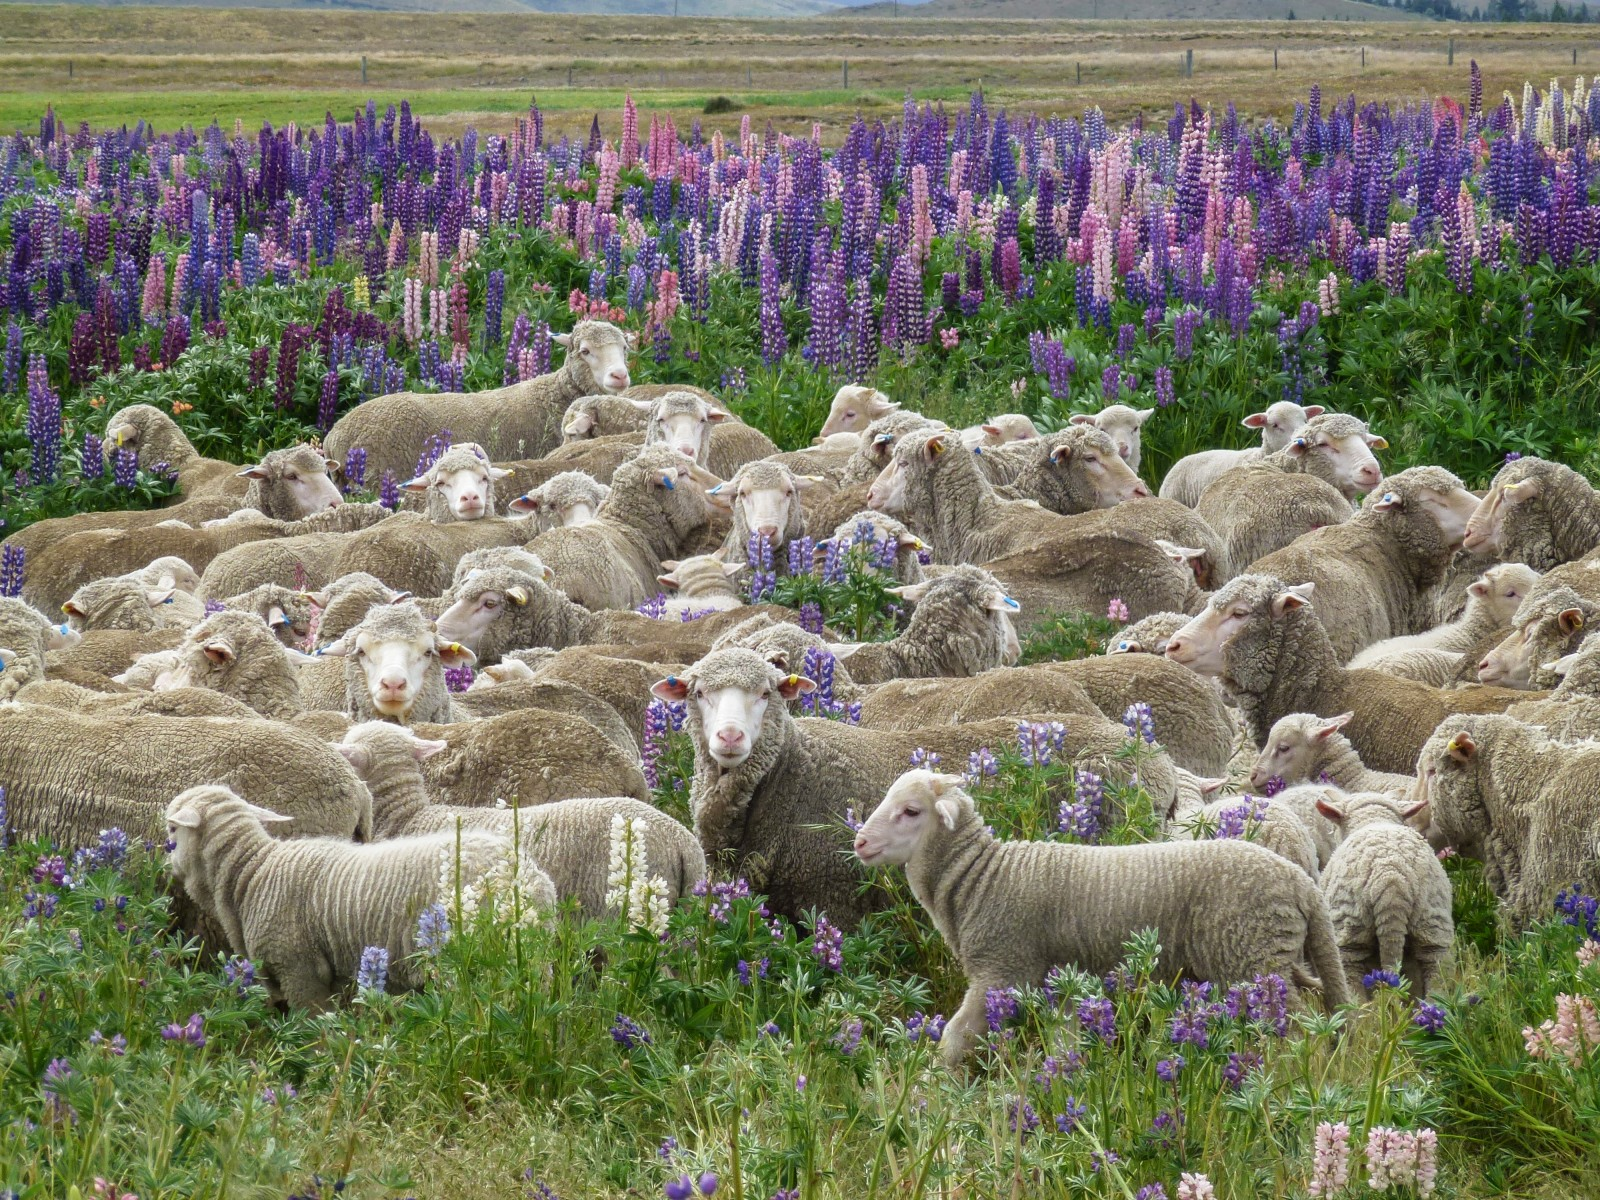 Merino sheep graze in a field of Russell lupins at Sawdon Station, near Tekapo. Lincoln University's Derrick Moot sees the crop as a saviour for high-country farmers. Able to survive lean soils and extreme heat and cold, the nitrogen-fixing lupin provides forage and even a little shelter for lambs, pictures here at nearby Glenmore Station.